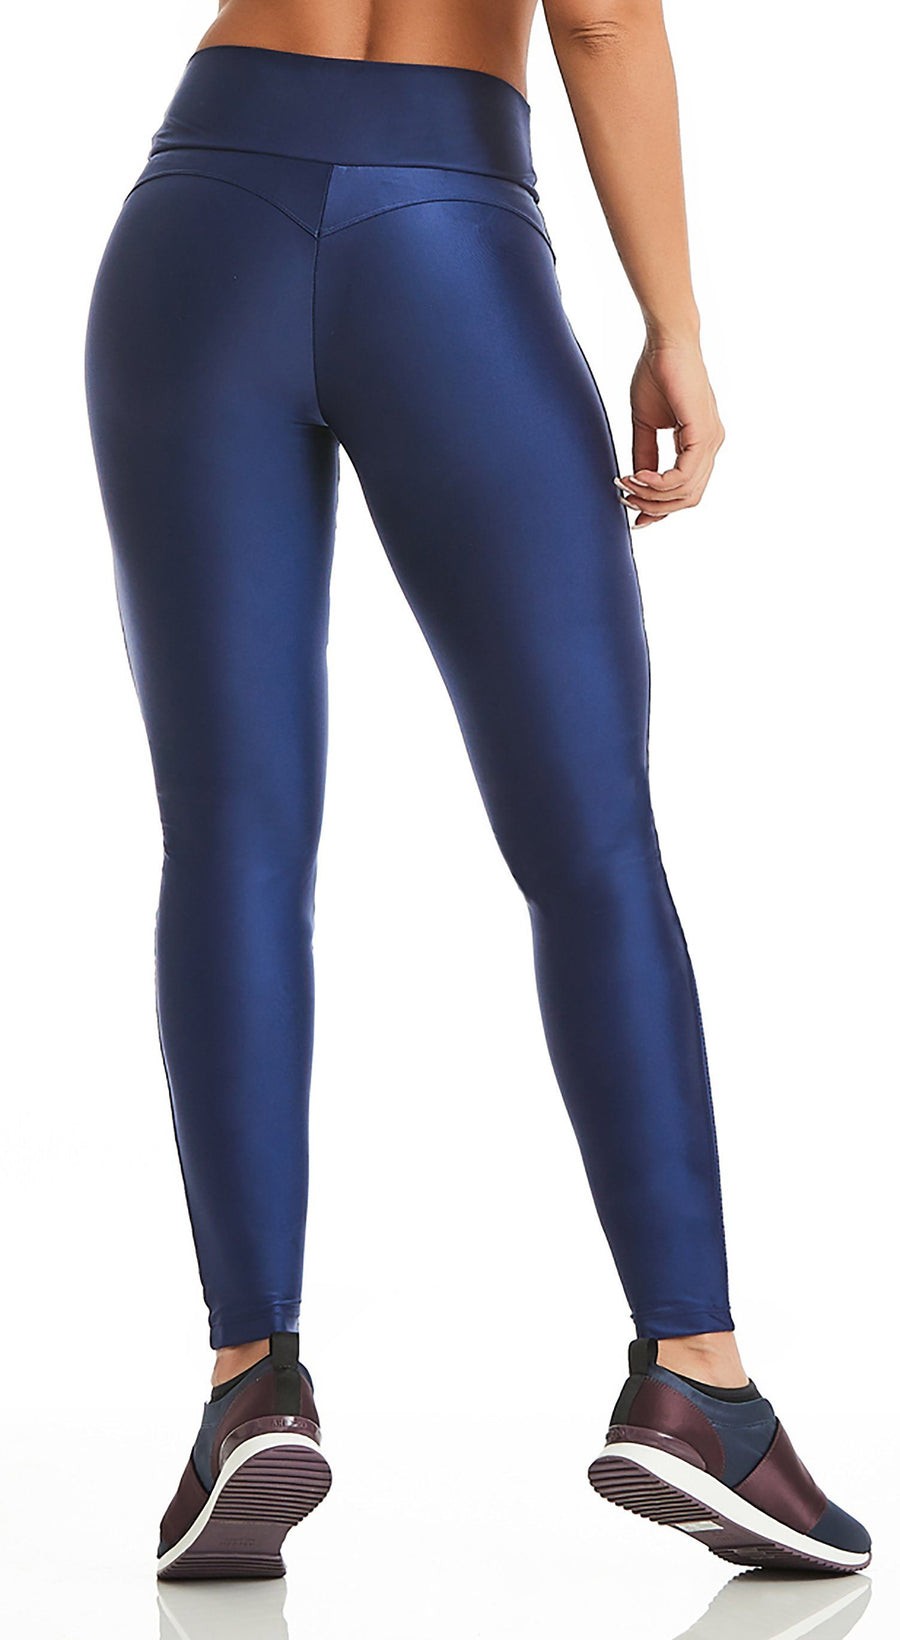 Brazilian Legging - Bum Push Up Navy